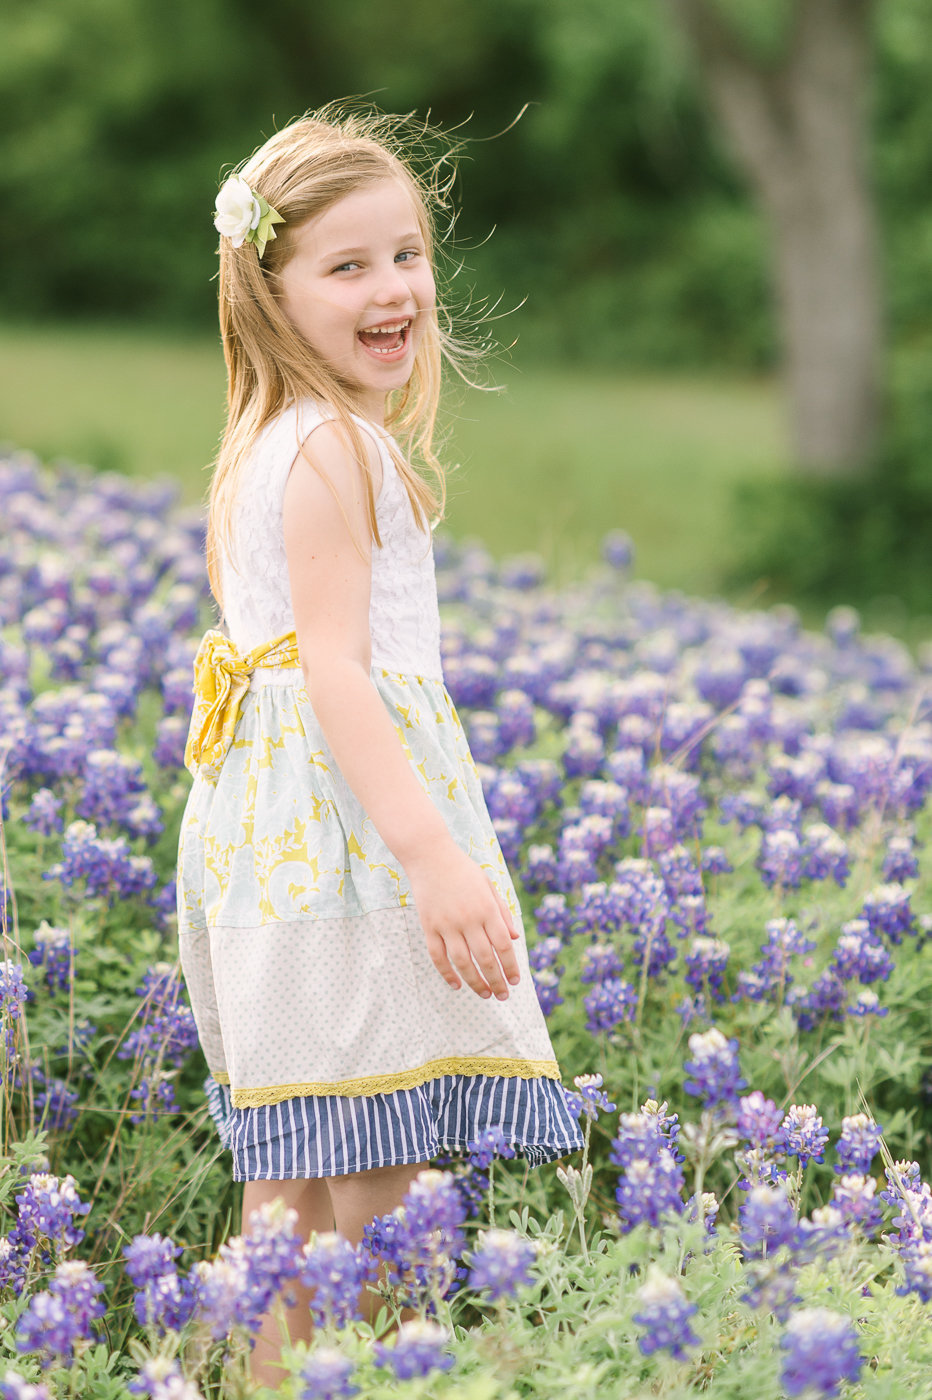 bluebonnet-texas-family-portrait-photographer-11